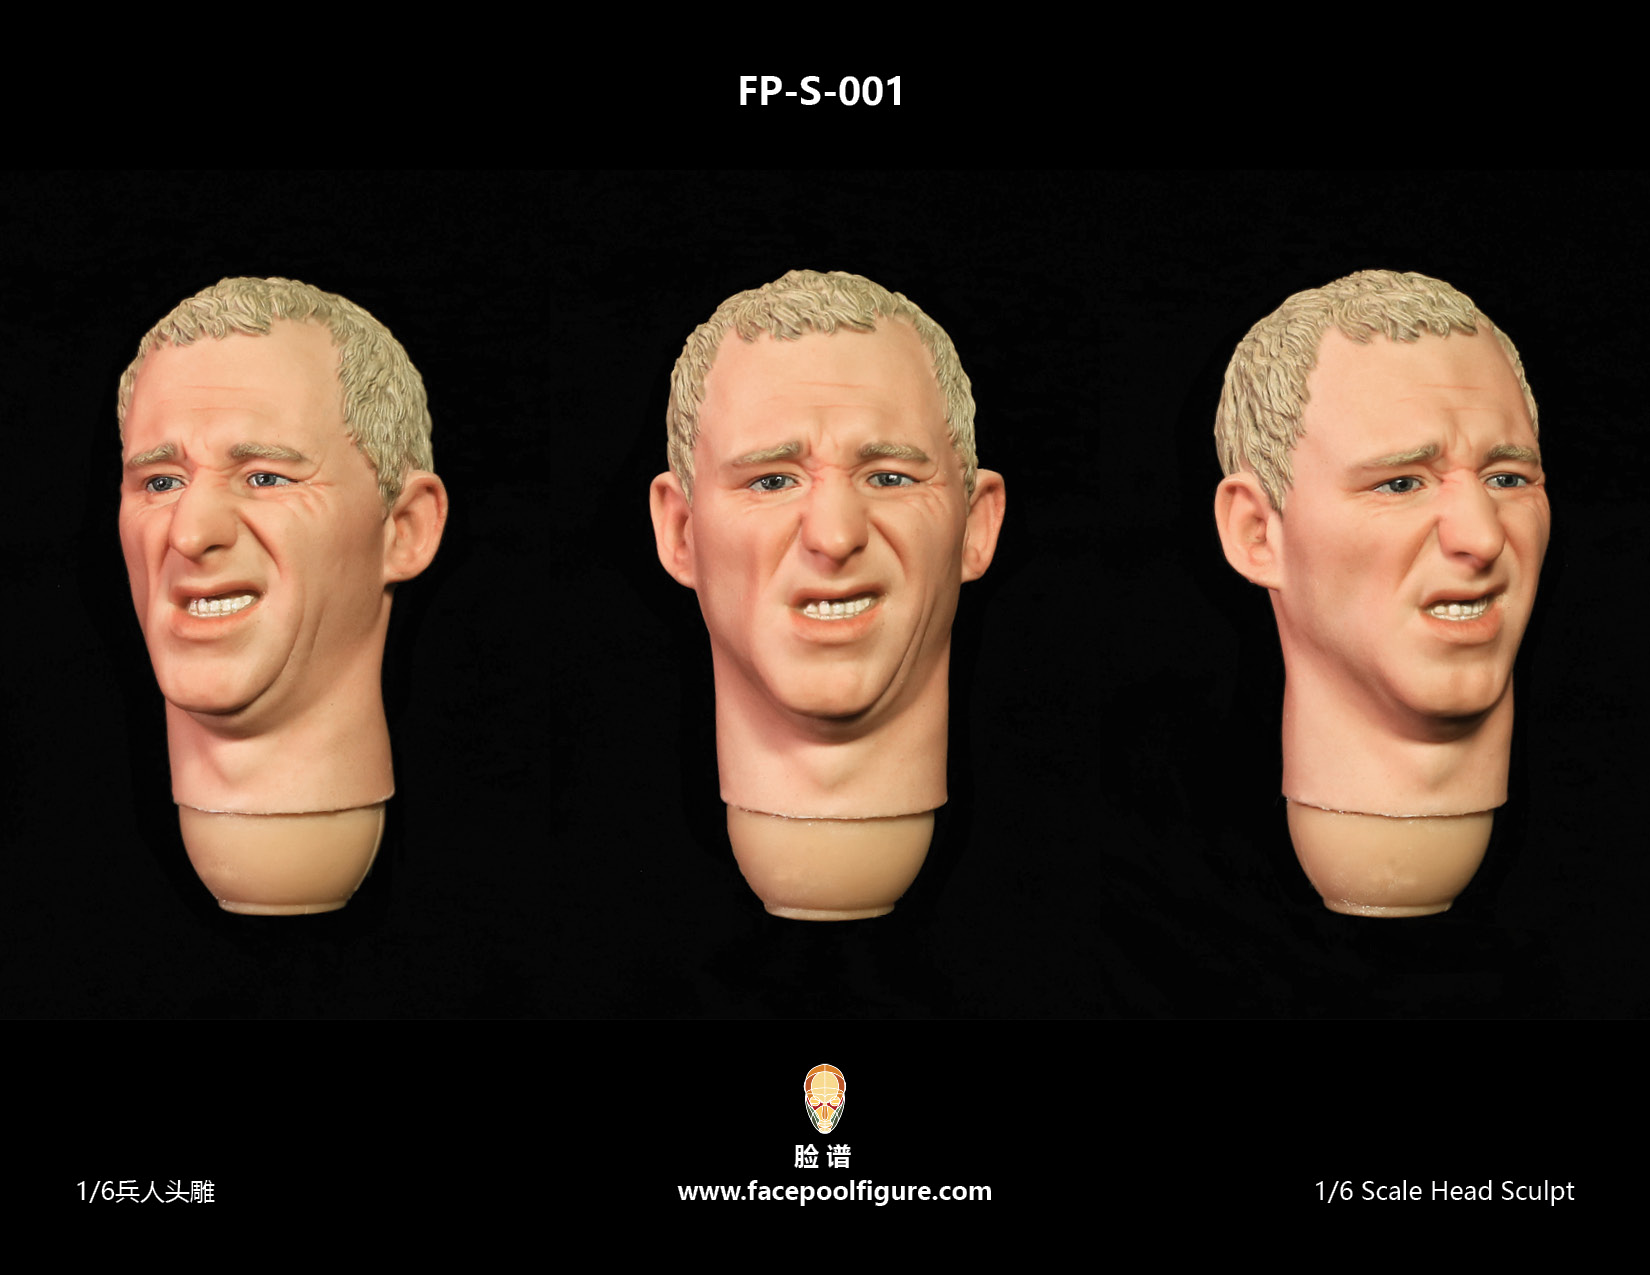 FacepoolFigure 1/6 Male Head Sculpt With Expression FP-S-001